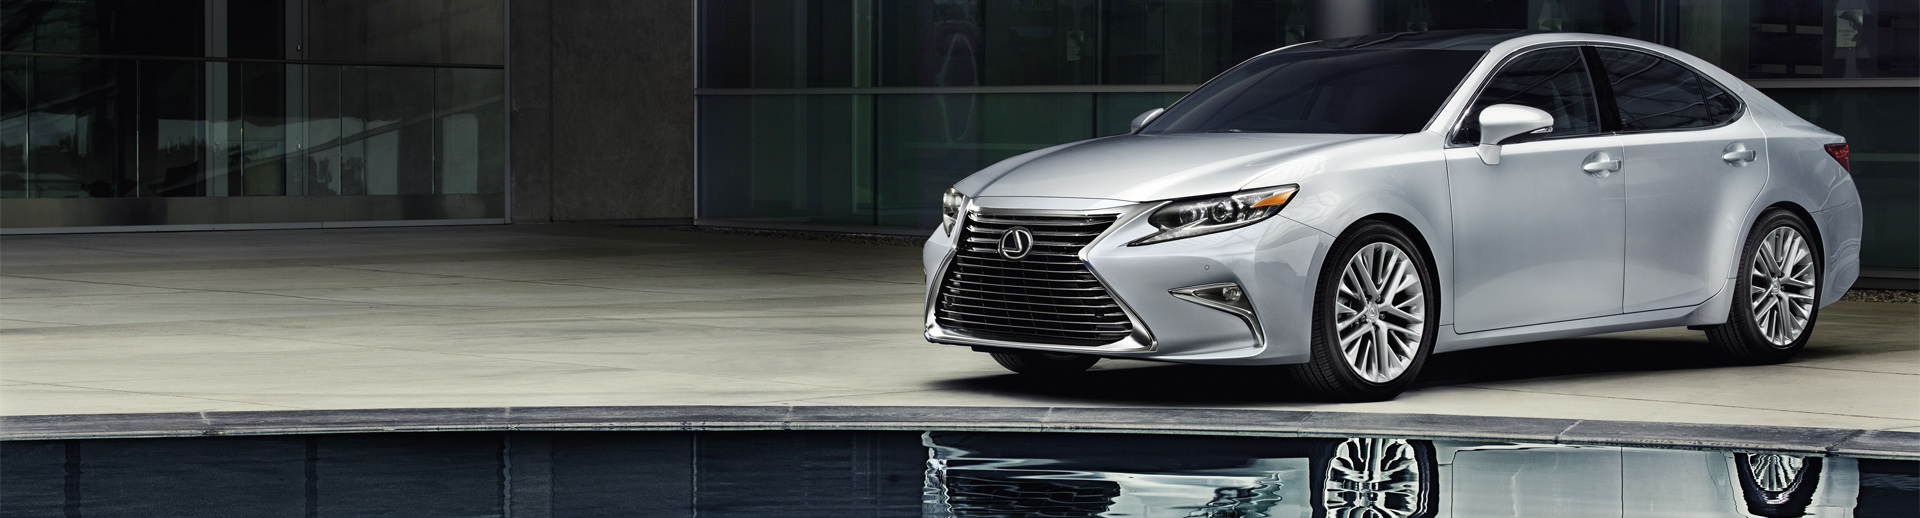 Lexus Dealers In Ohio >> Lexus Of Dayton Is A Centerville Lexus Dealer And A New Car And Used